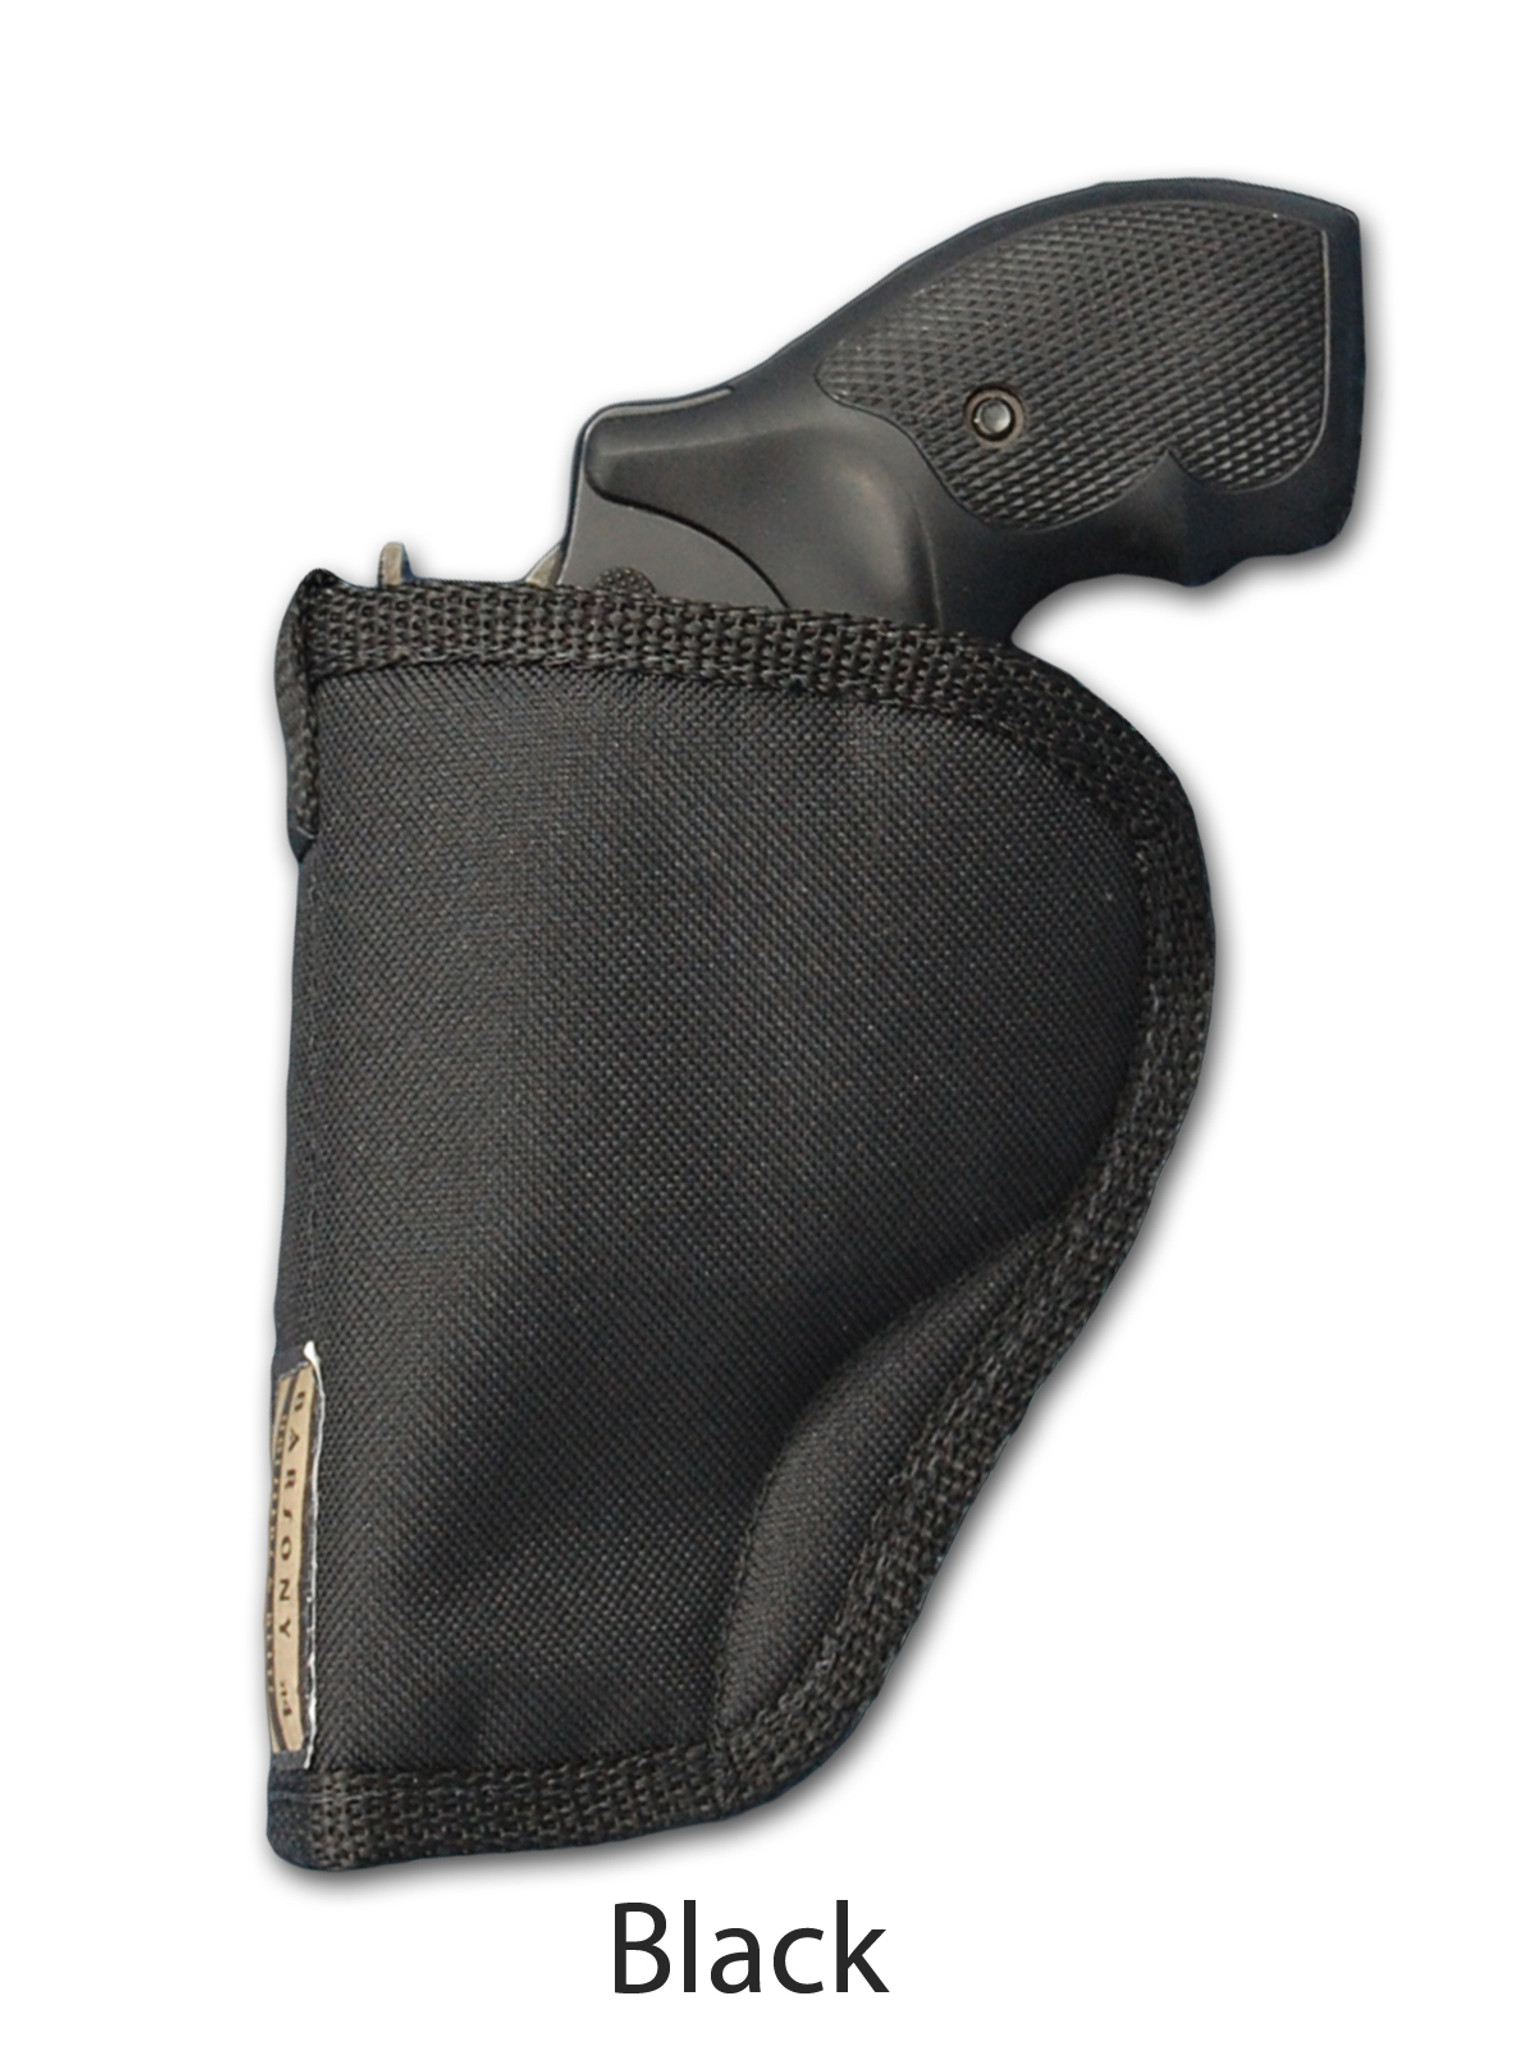 Inside the Waistband Holster for 2